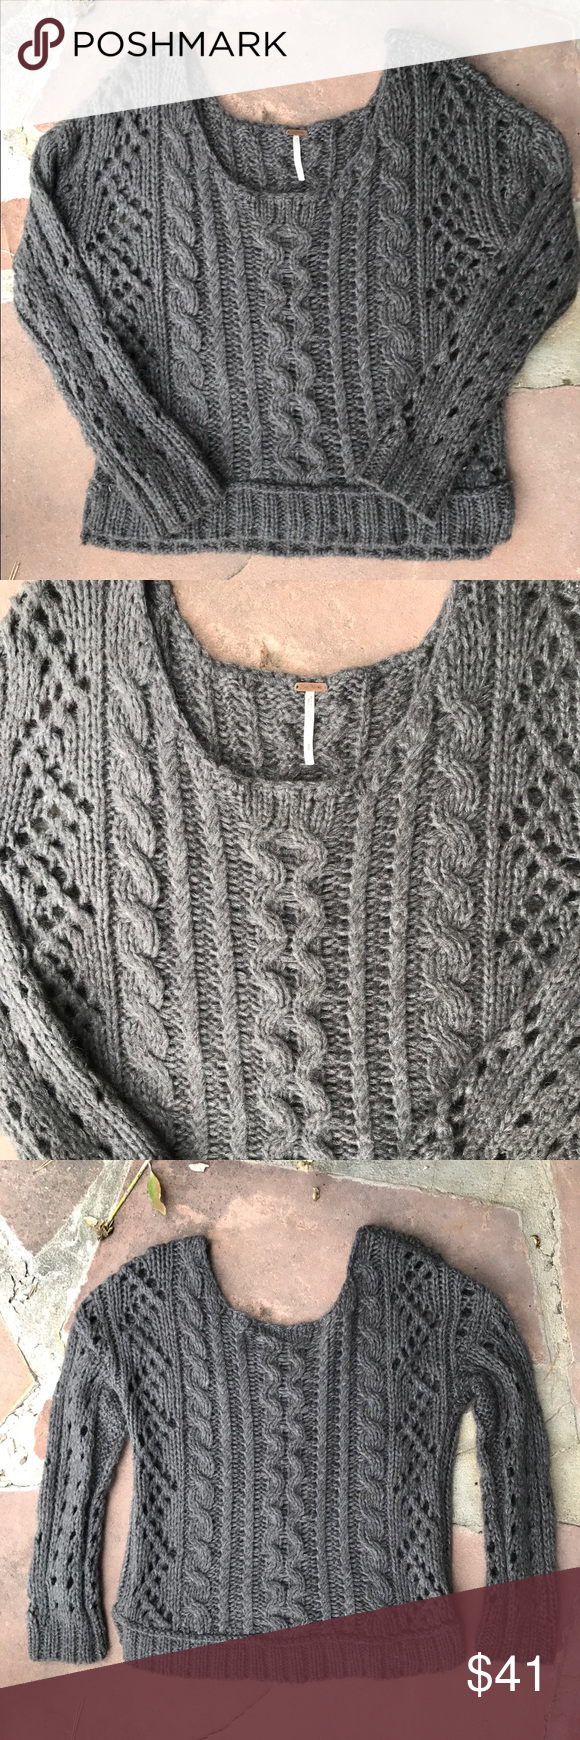 Free people cable knit sweater | Cable knit sweaters, Cable ...